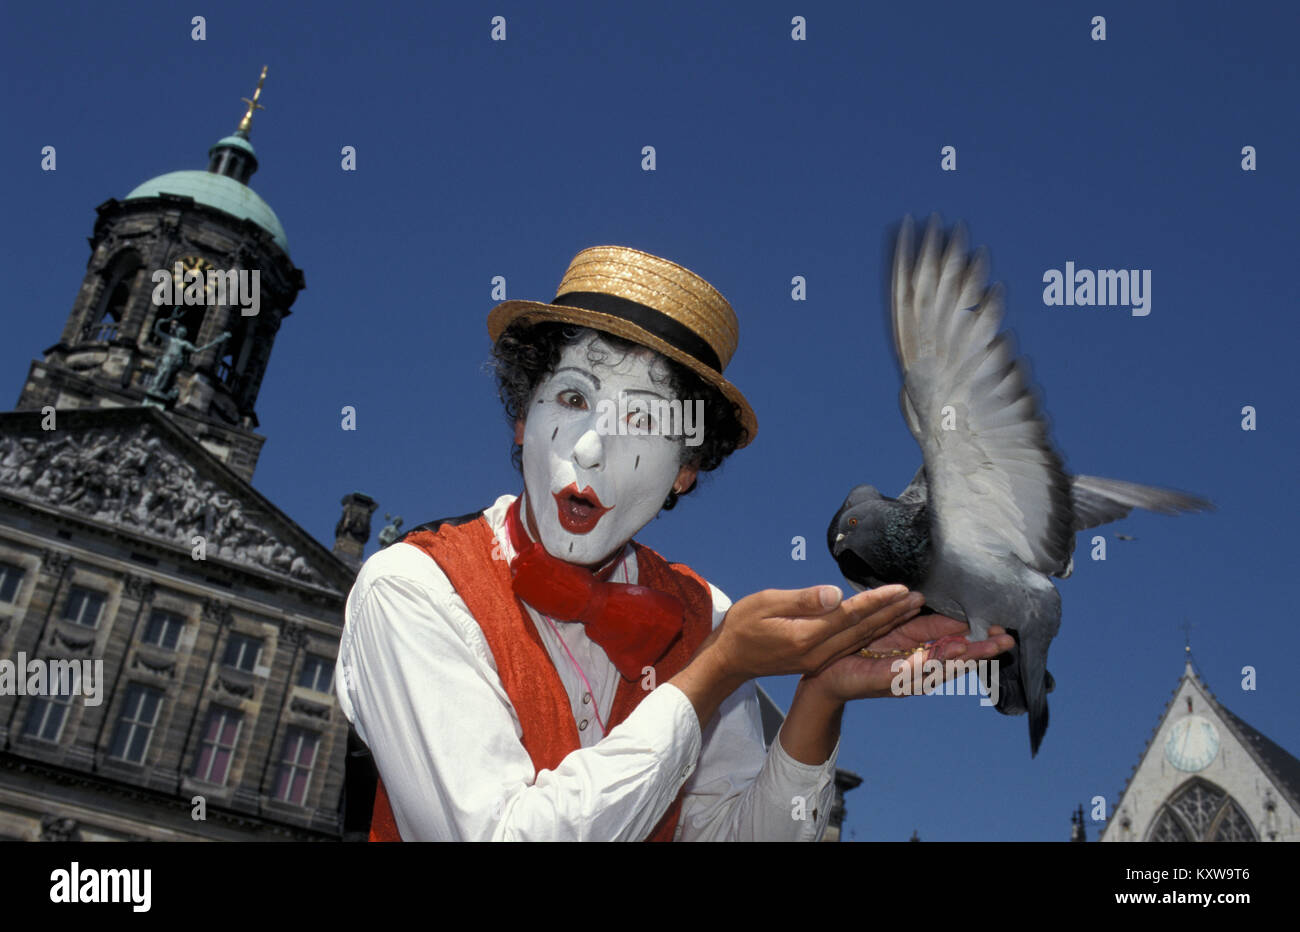 The Netherlands. Amsterdam. Mime player on DAM square. Street theatre. - Stock Image